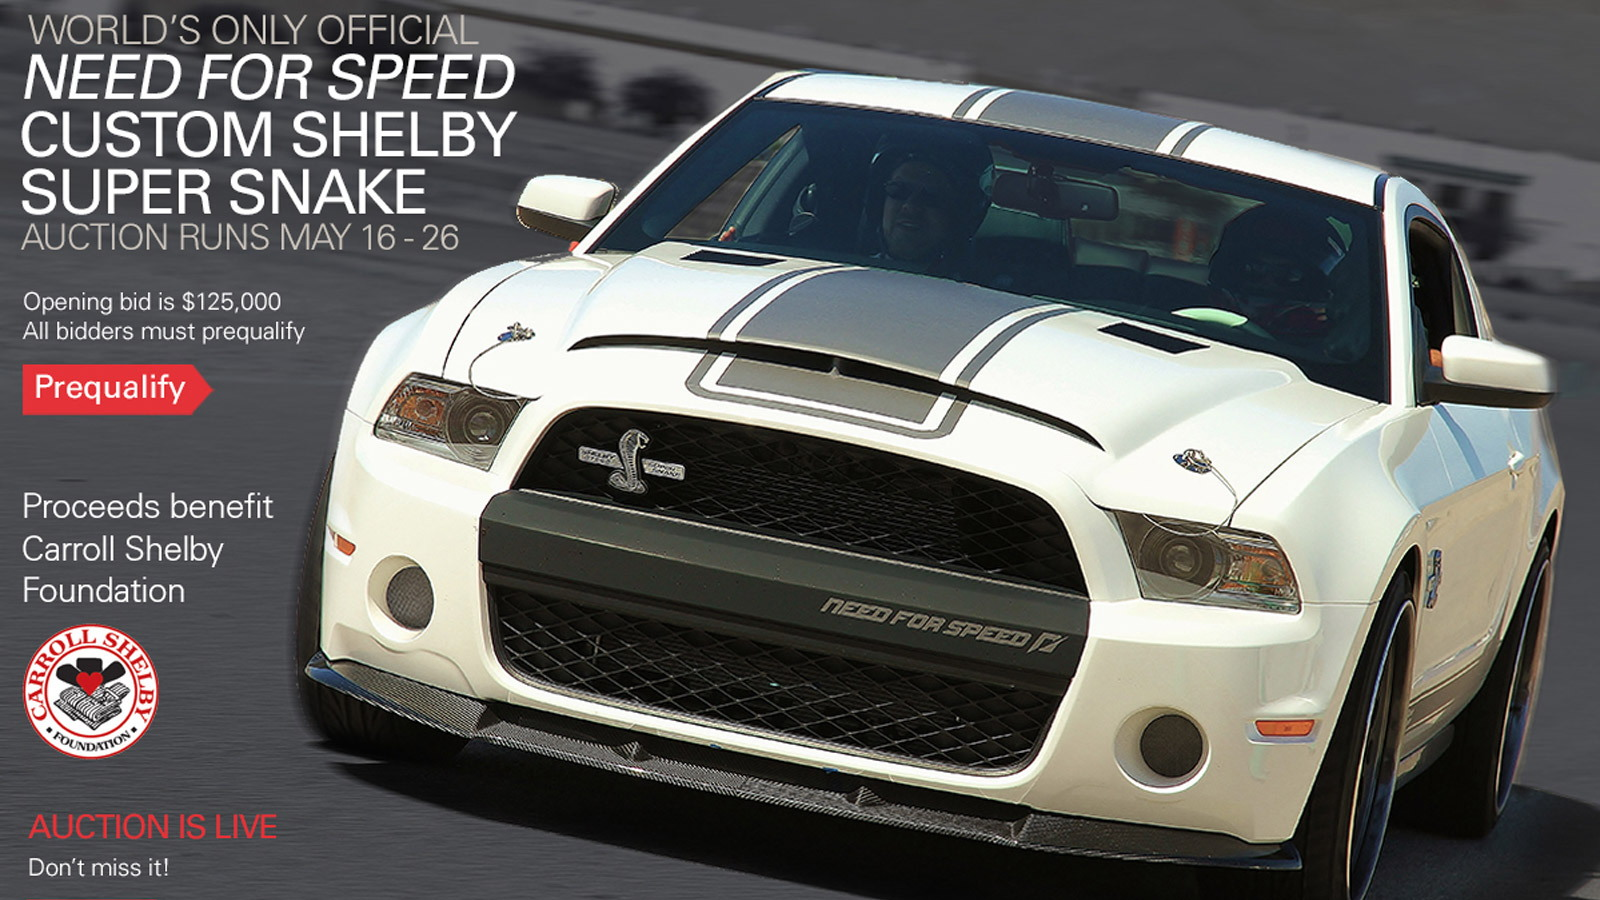 2011 Ford Shelby GT500 Super Snake Need for Speed Edition auction banner